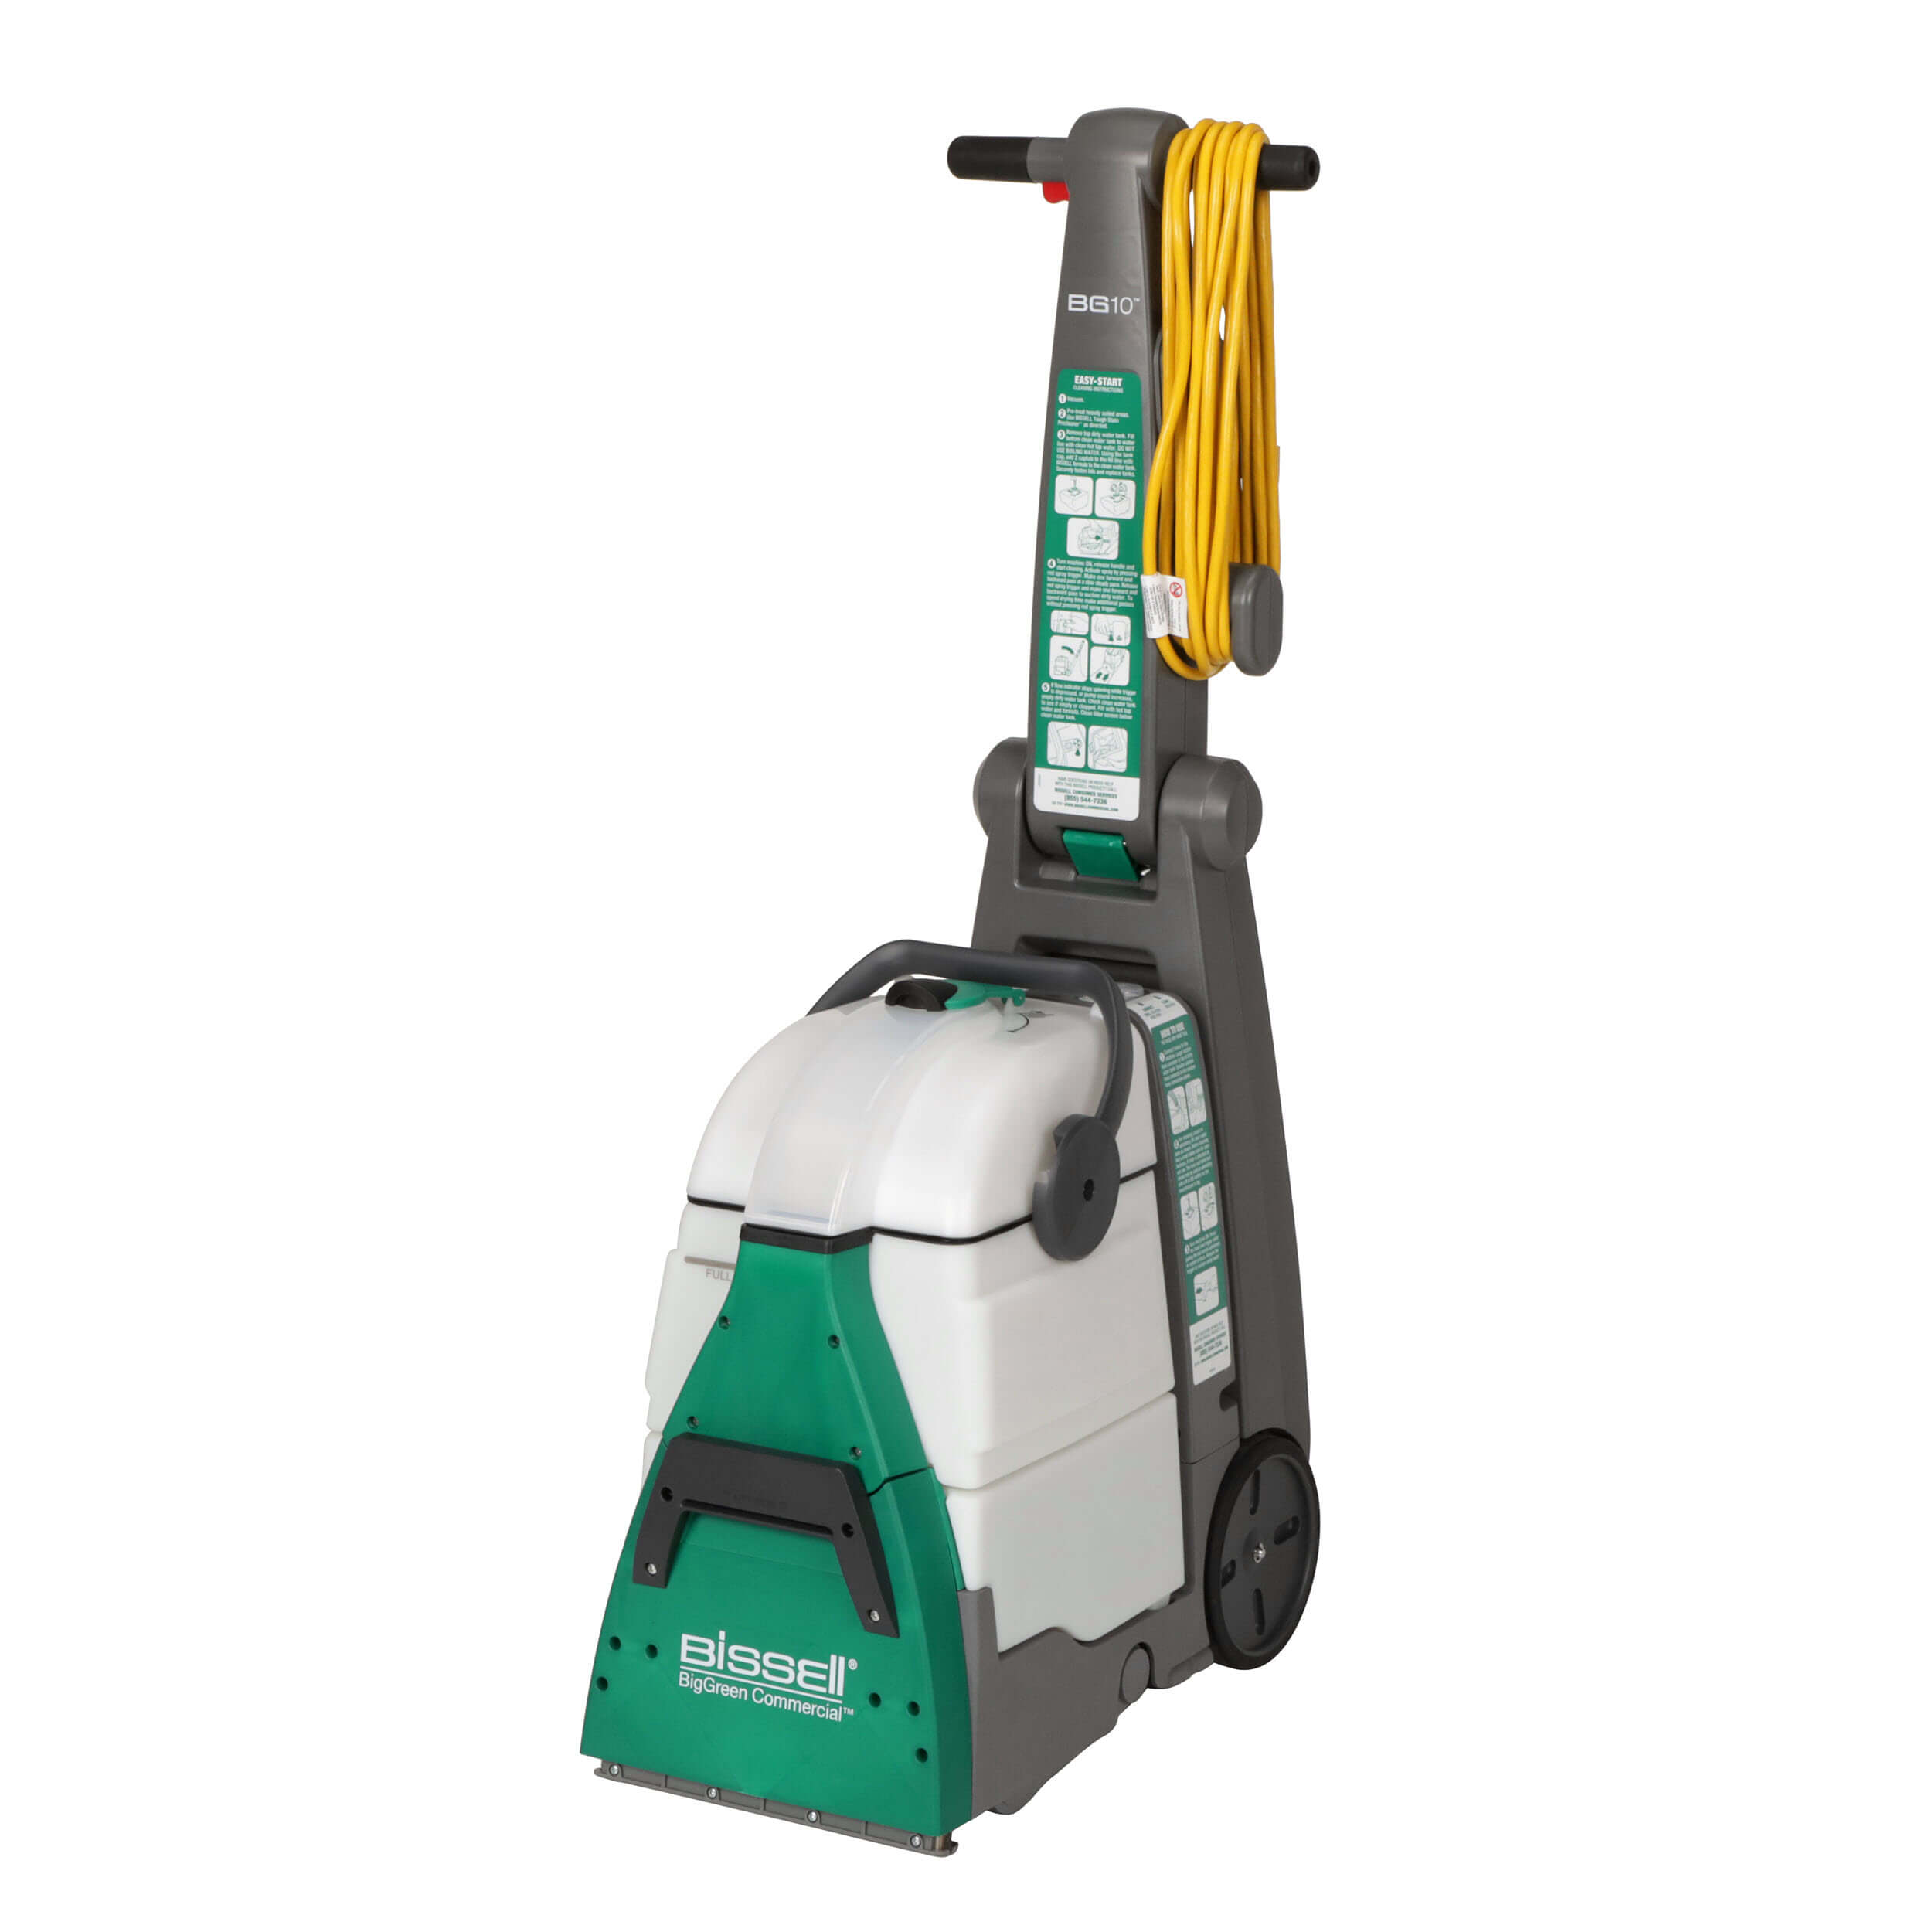 Bissell BG10 Upright Deep Cleaner